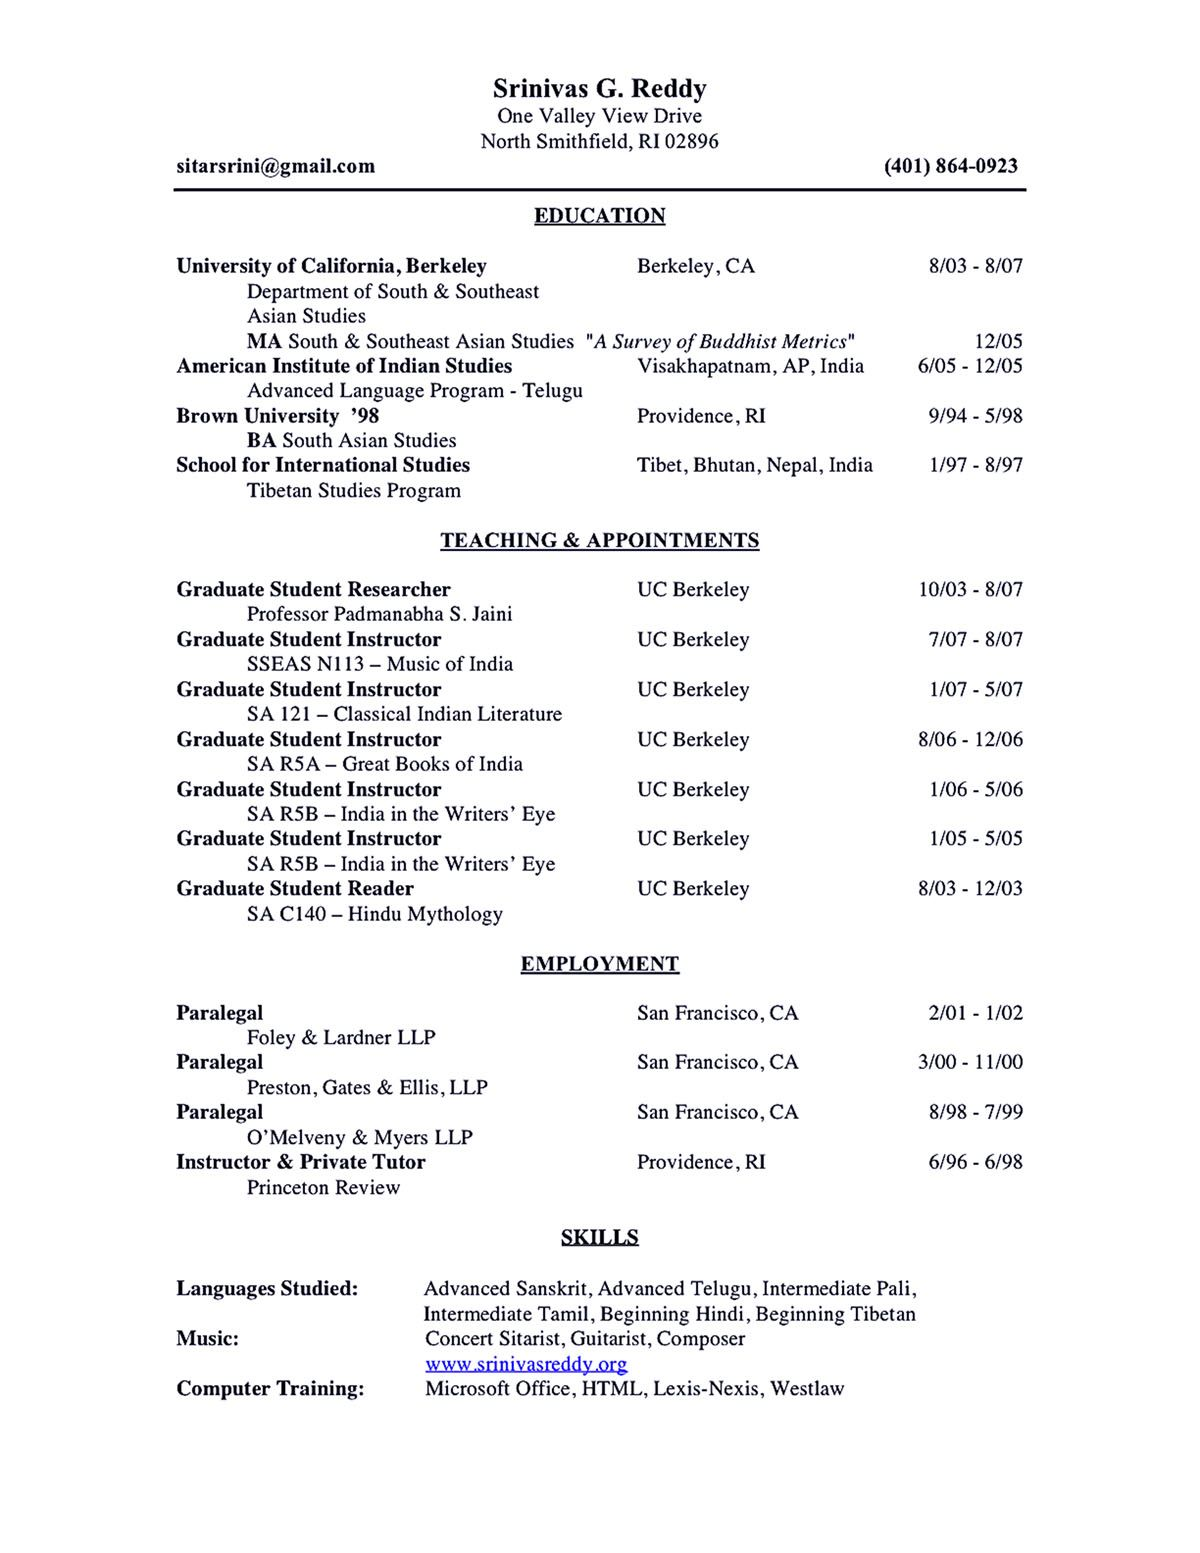 academic resume sample shows you how to make academic resume outstandingly so the resume will get - Sample Academic Resume